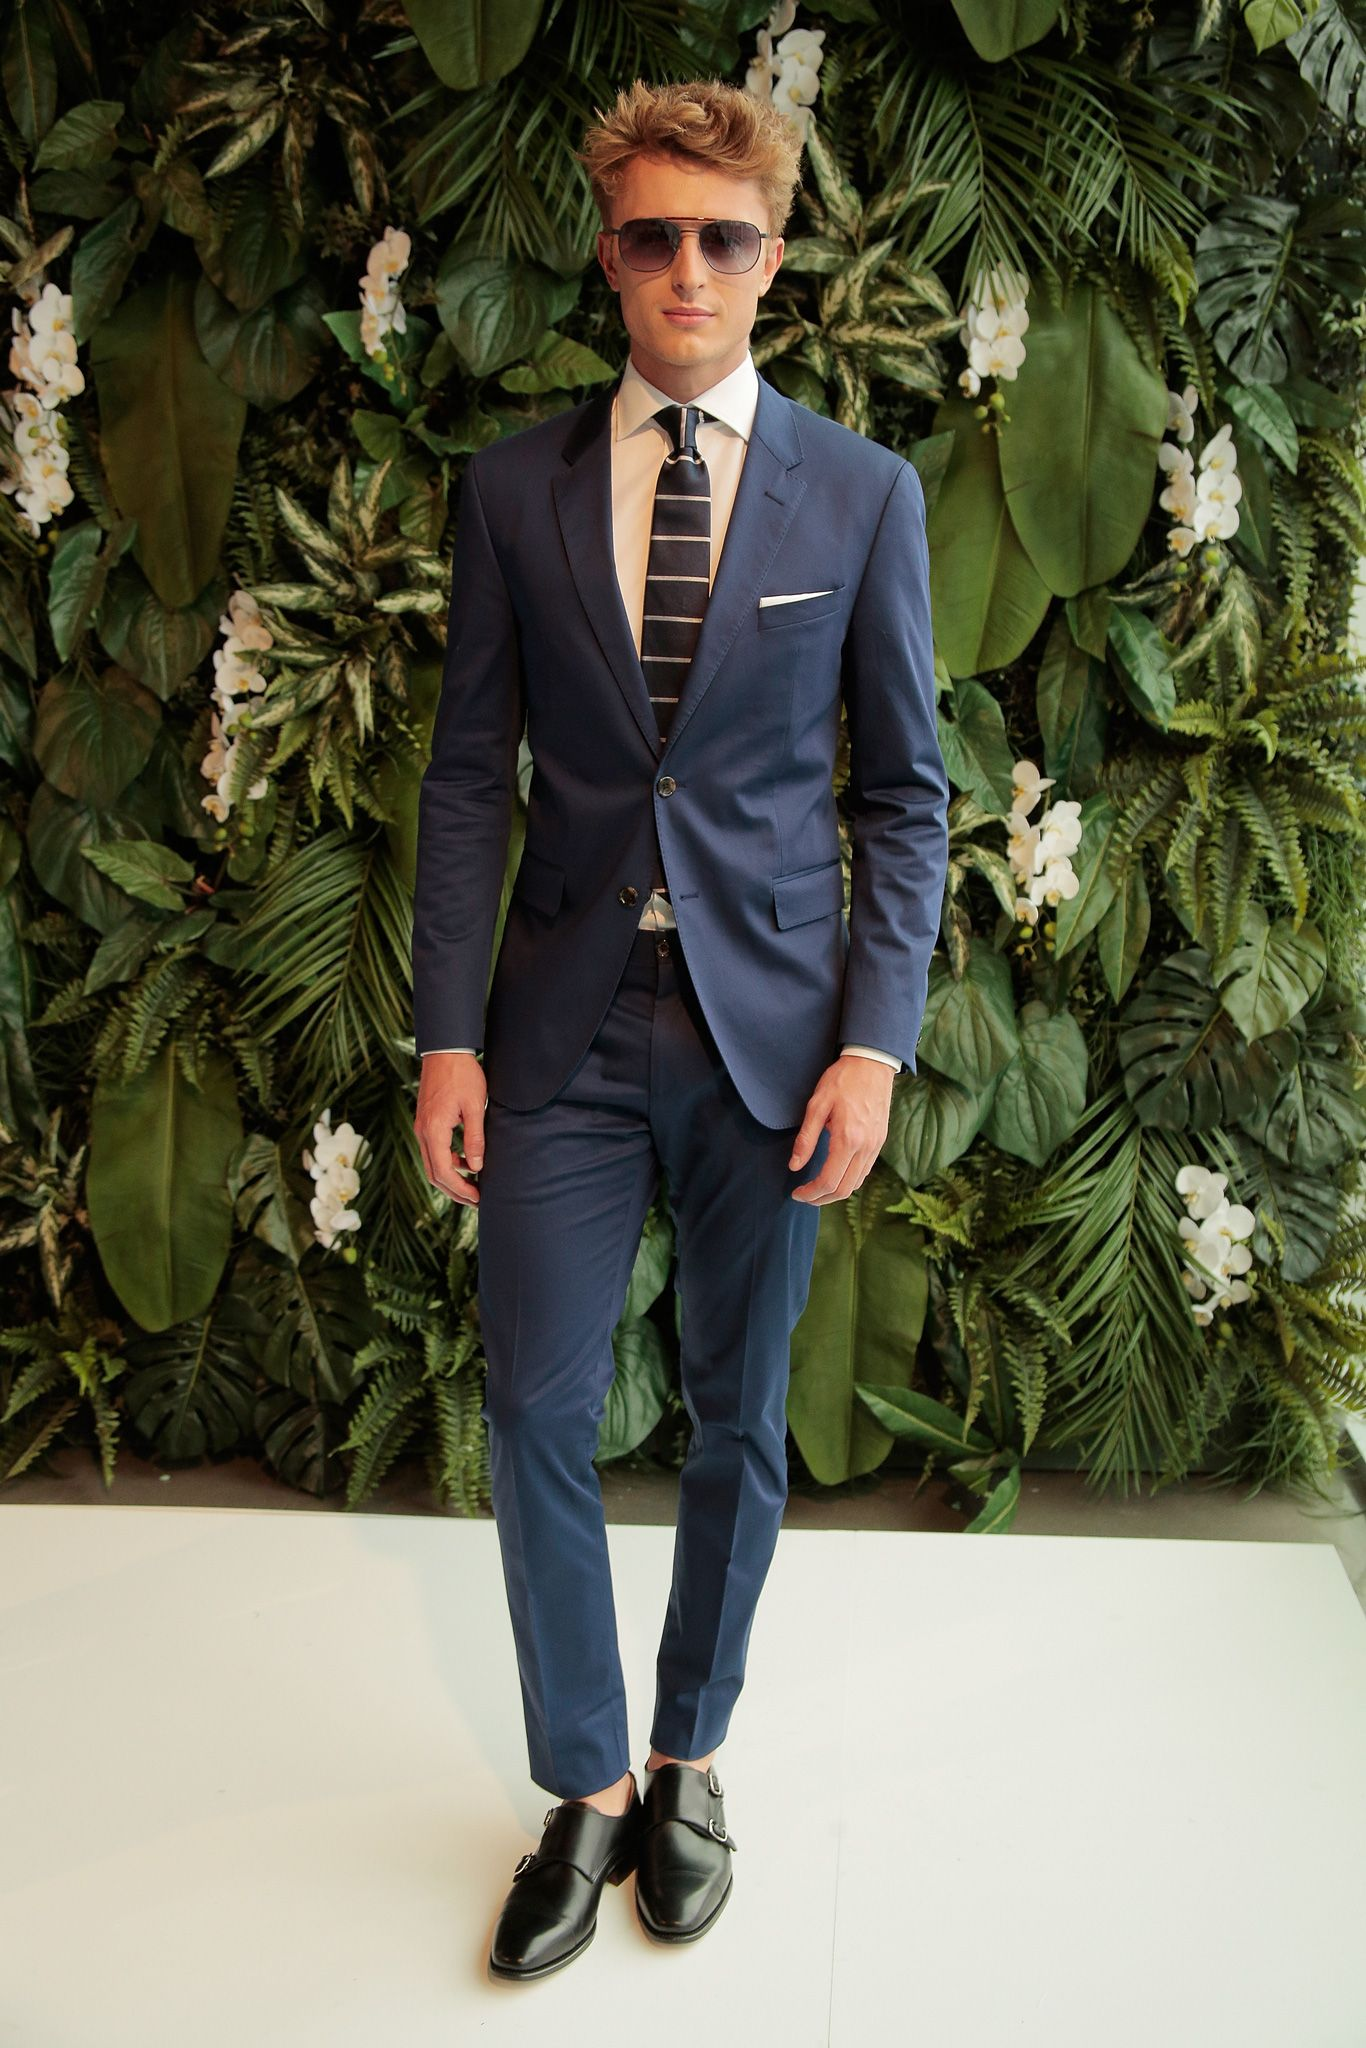 it's all about the fit -- and Hilfiger delivers, Tommy Hilfiger Spring 2016 Menswear, New York Fashion Week: Mens // menswear style + fashion